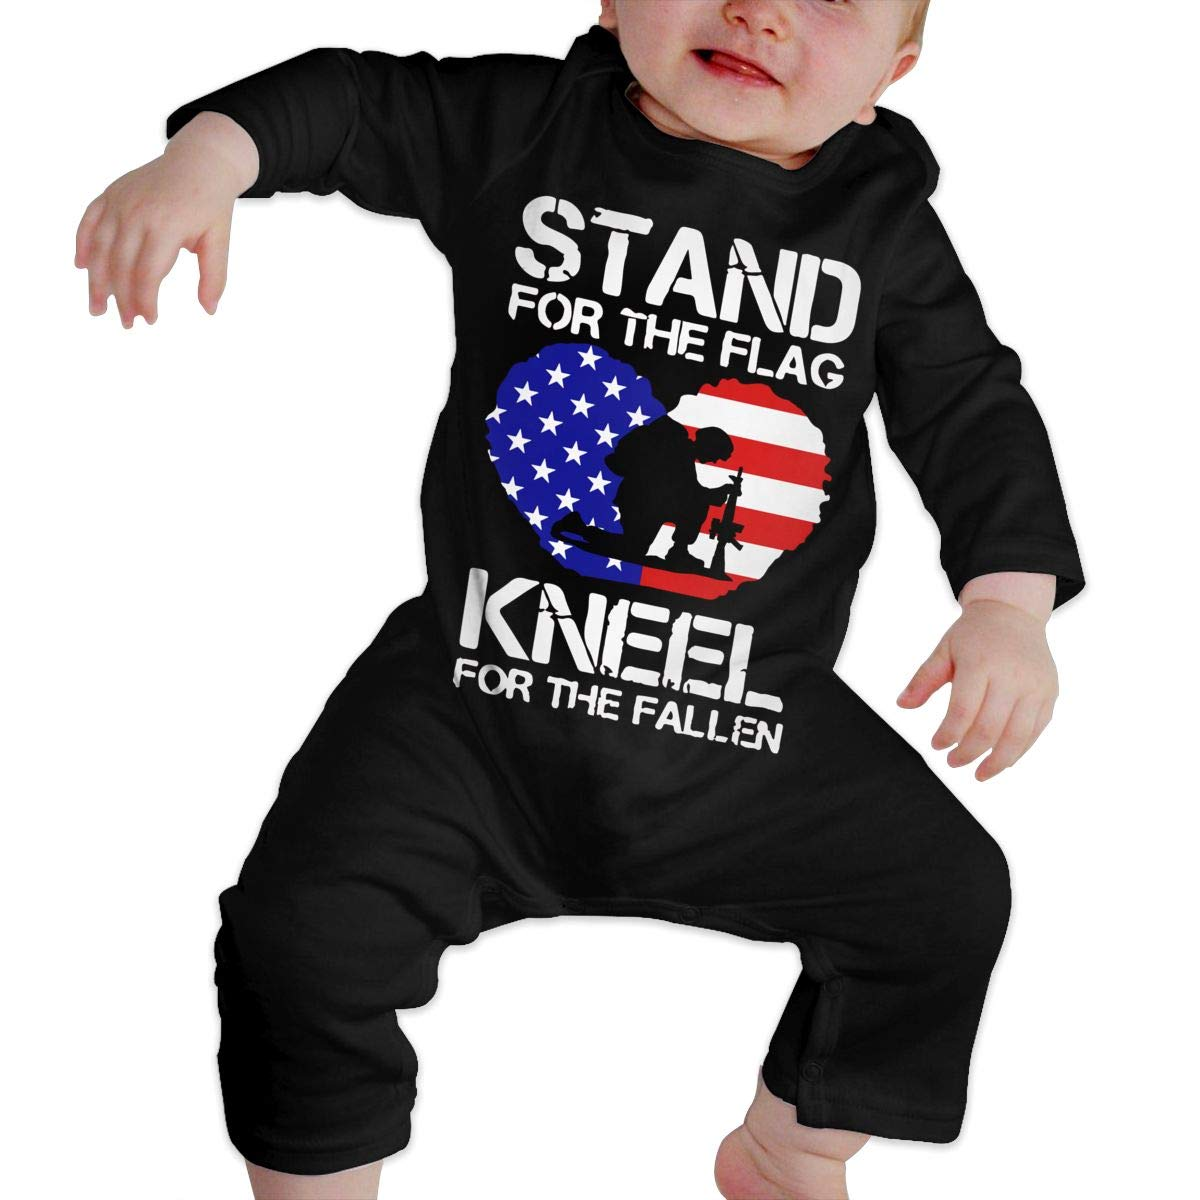 Kneel for The Fallen-1 Climb Jumpsuit Funny Printed Romper Clothes Infant Baby Girls Cotton Long Sleeve Stand for The Flag